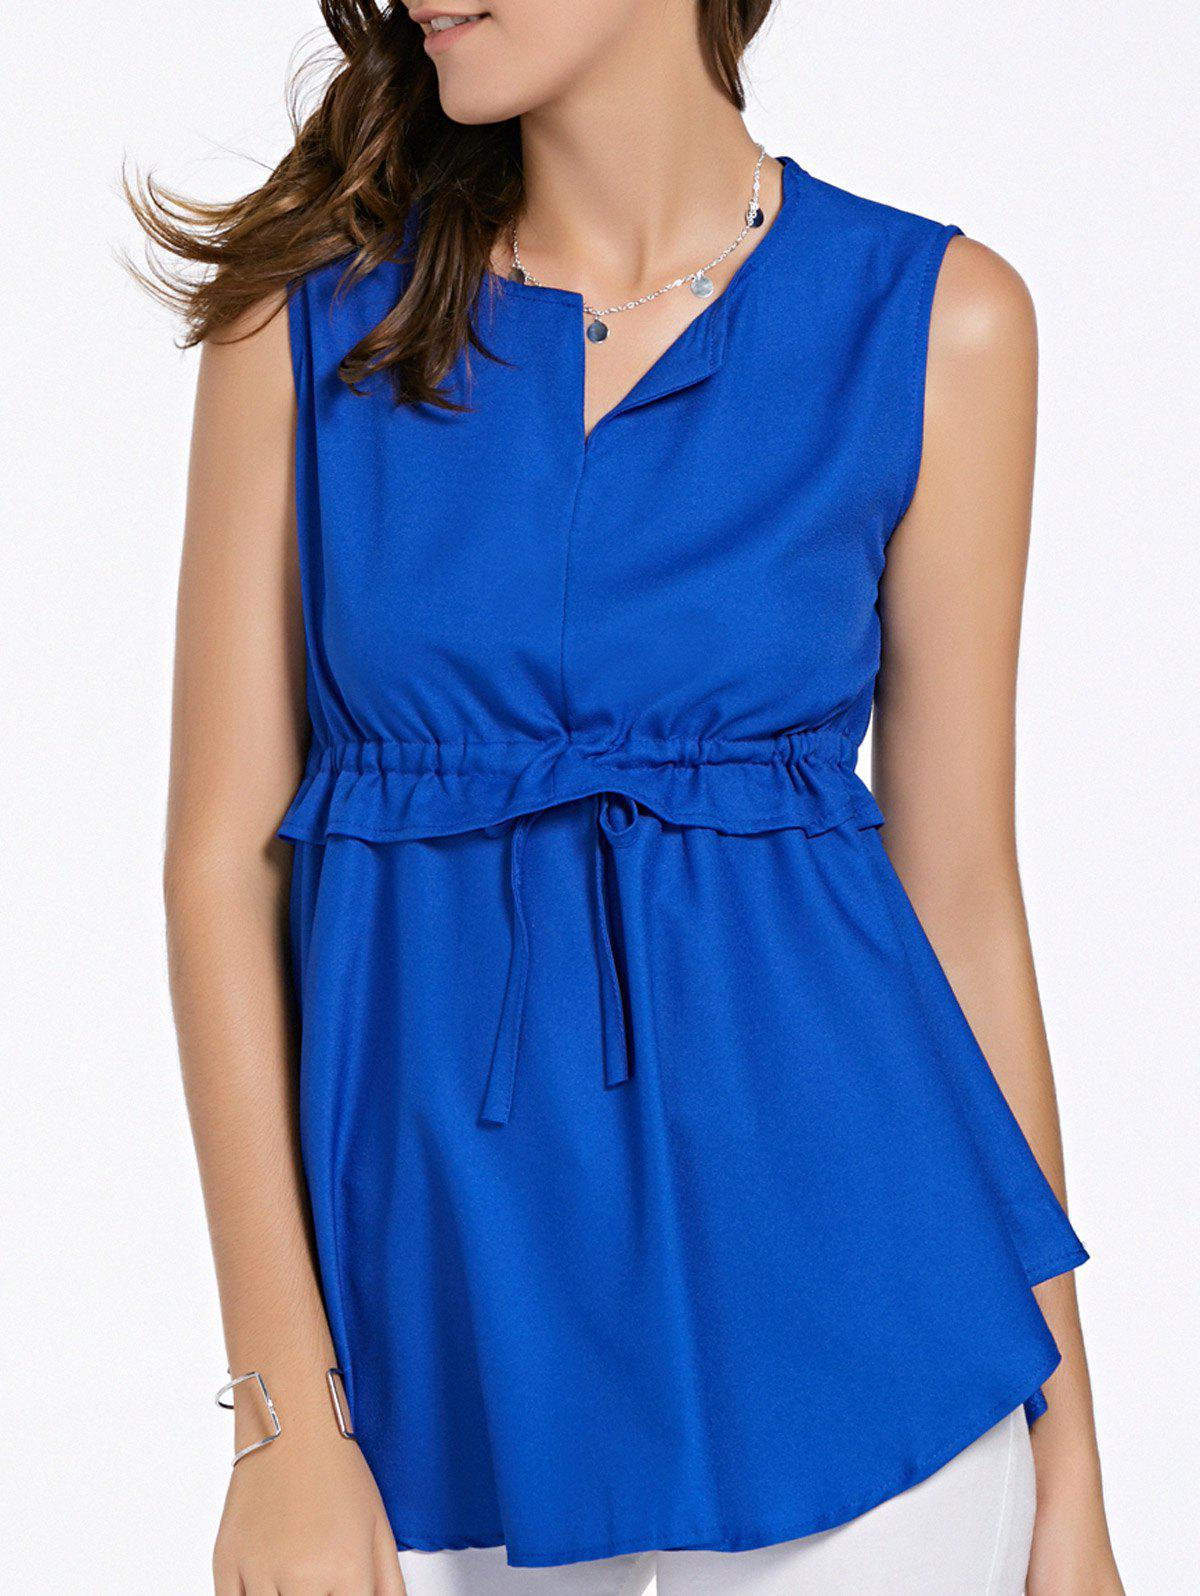 Sweet Women's V-Neck Sleeveless Double-Layered Solid Color Top